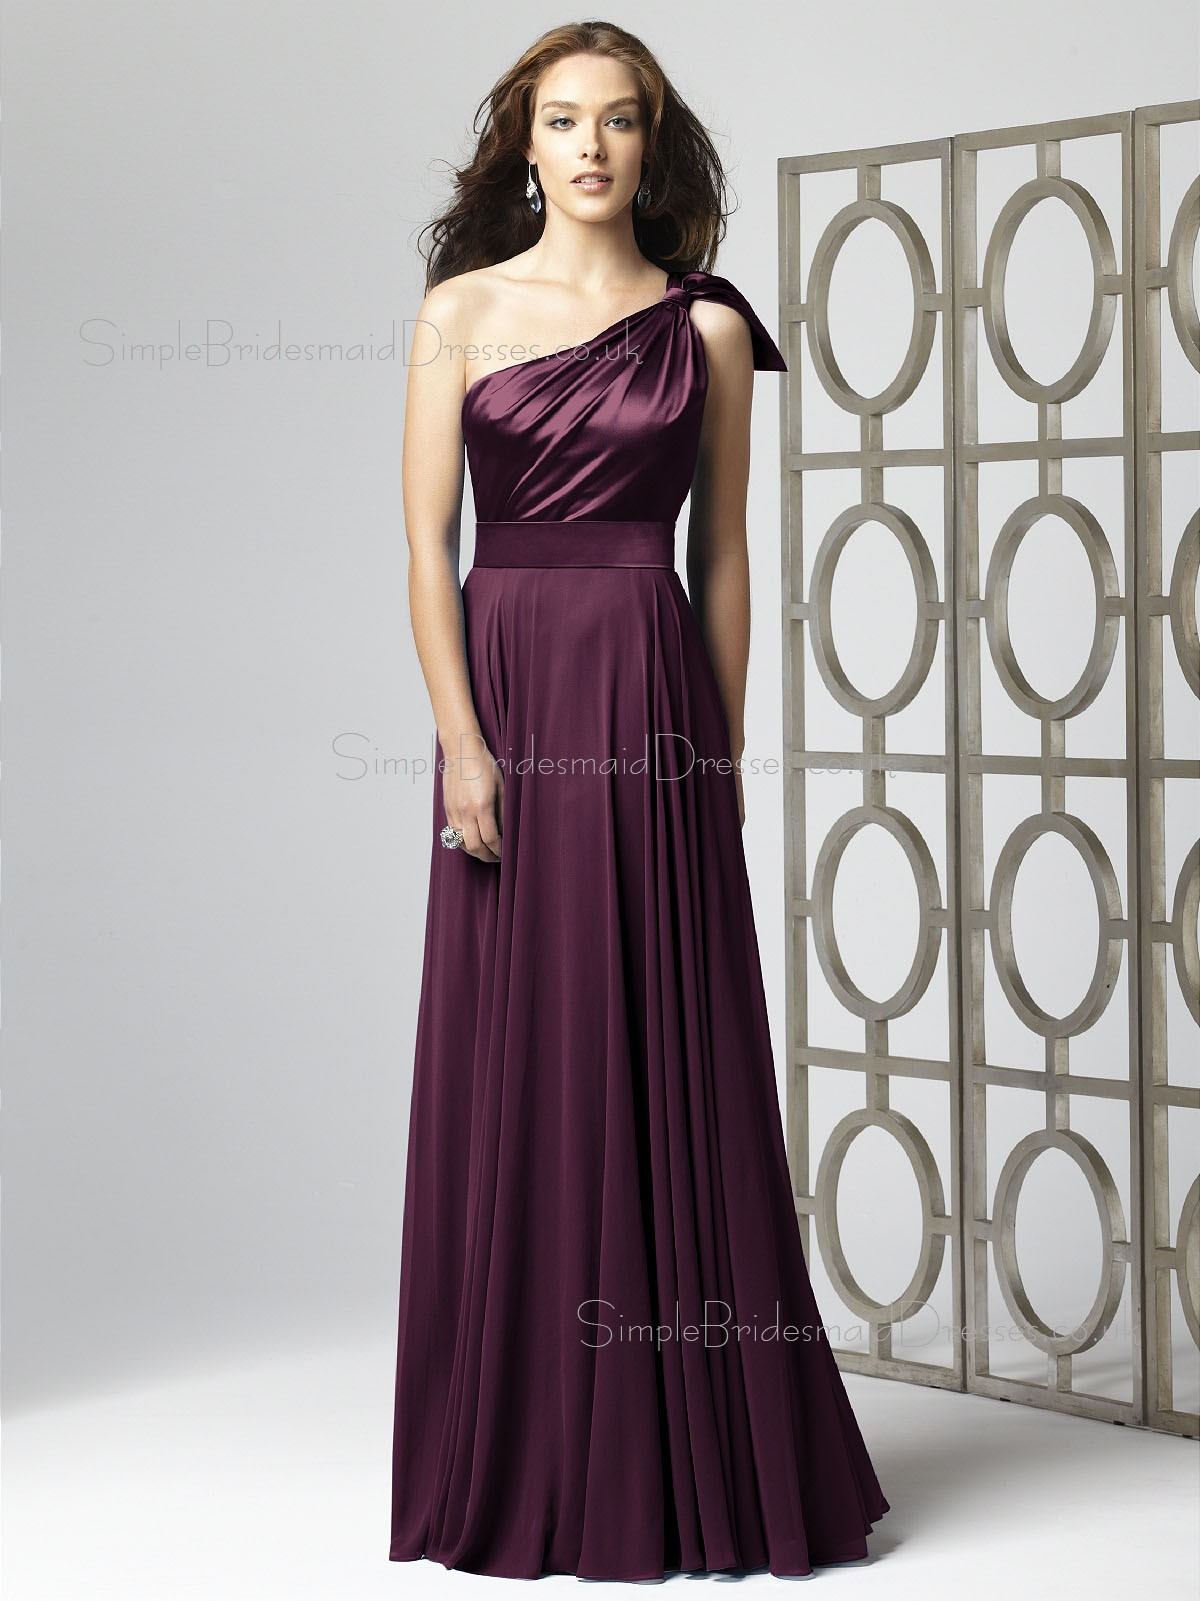 Purple Bridesmaid Dresses UK | Cheap Purple Bridesmaid Dresses ...